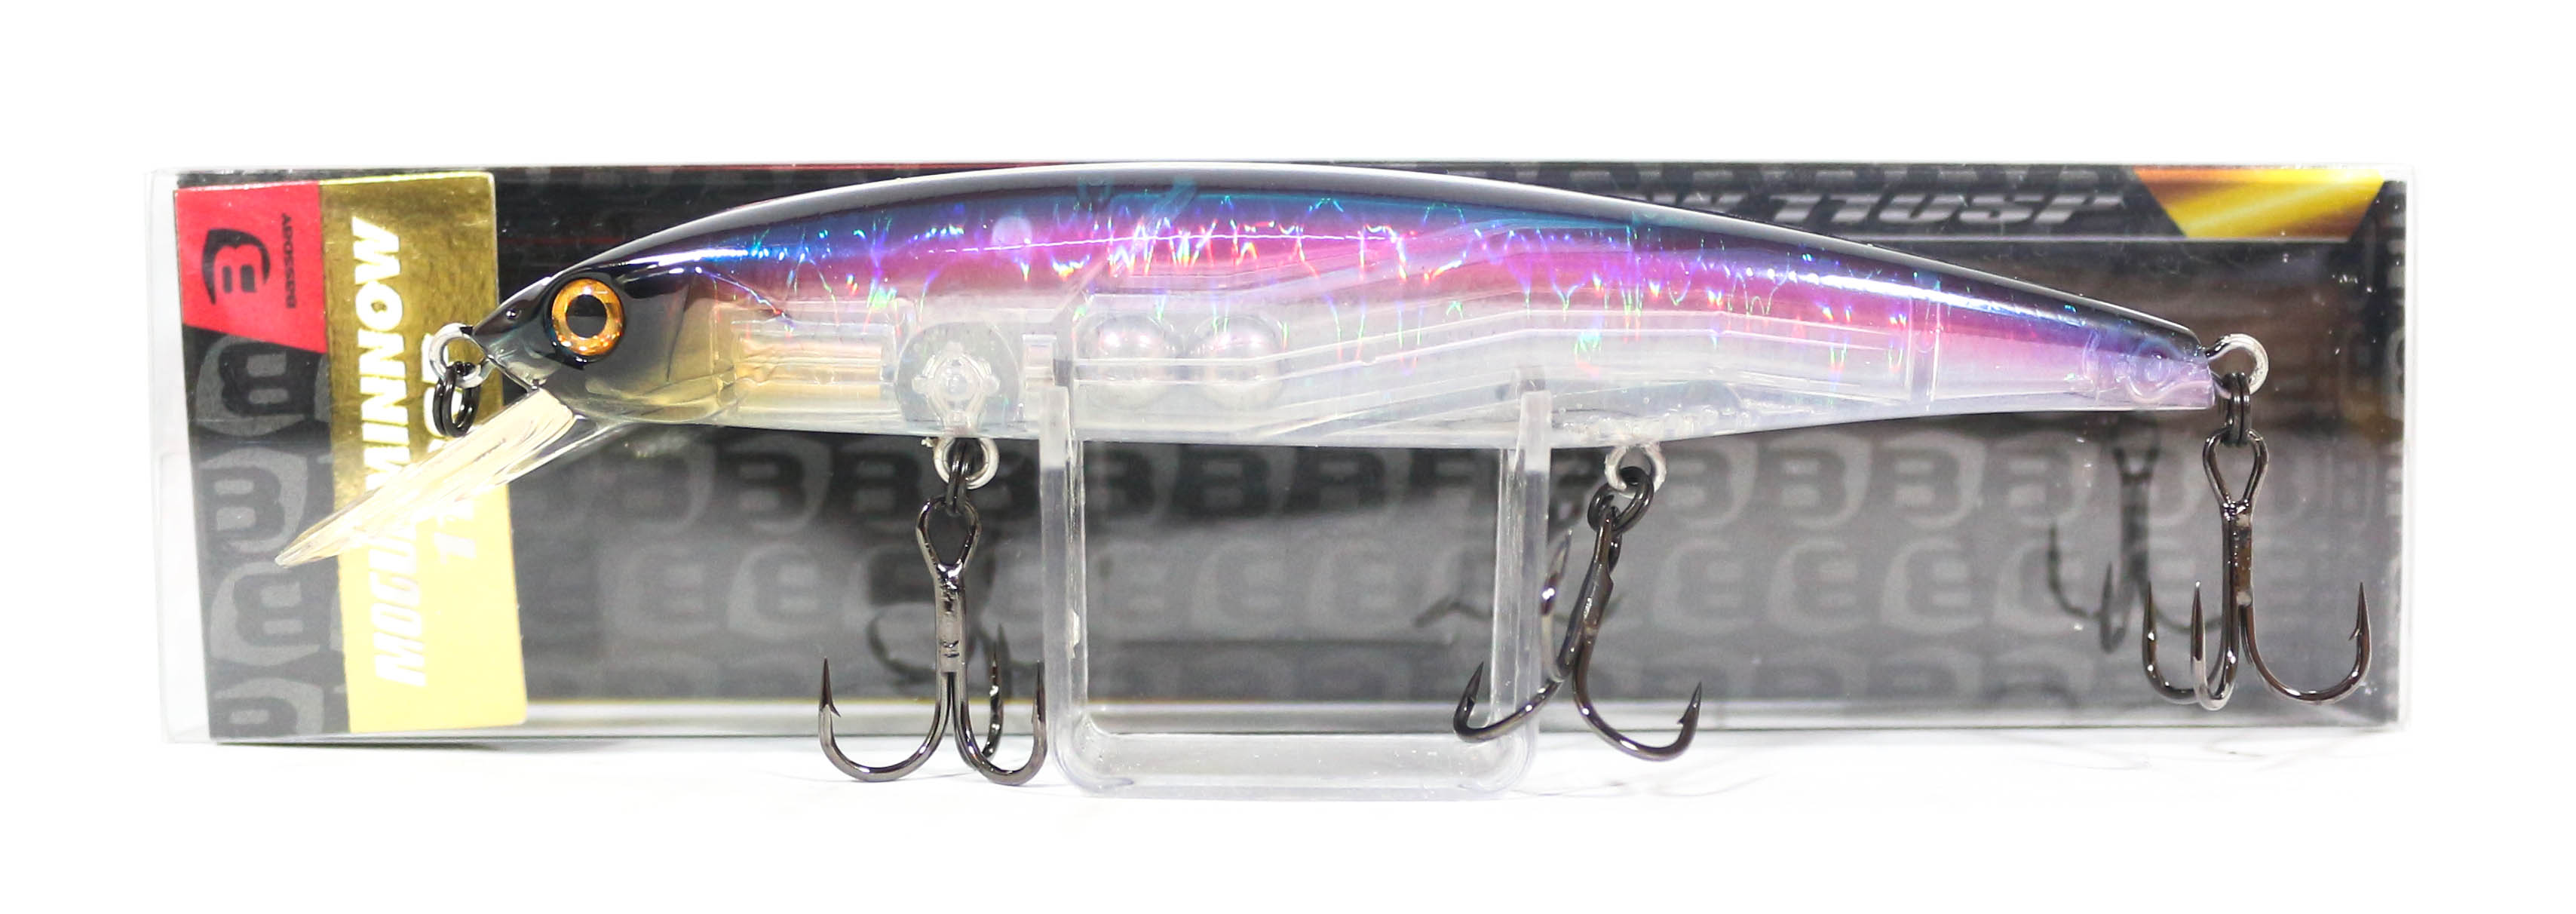 Bassday Mogul Minnow 110SP Suspend Lure 17 grams HF-51 (3123)